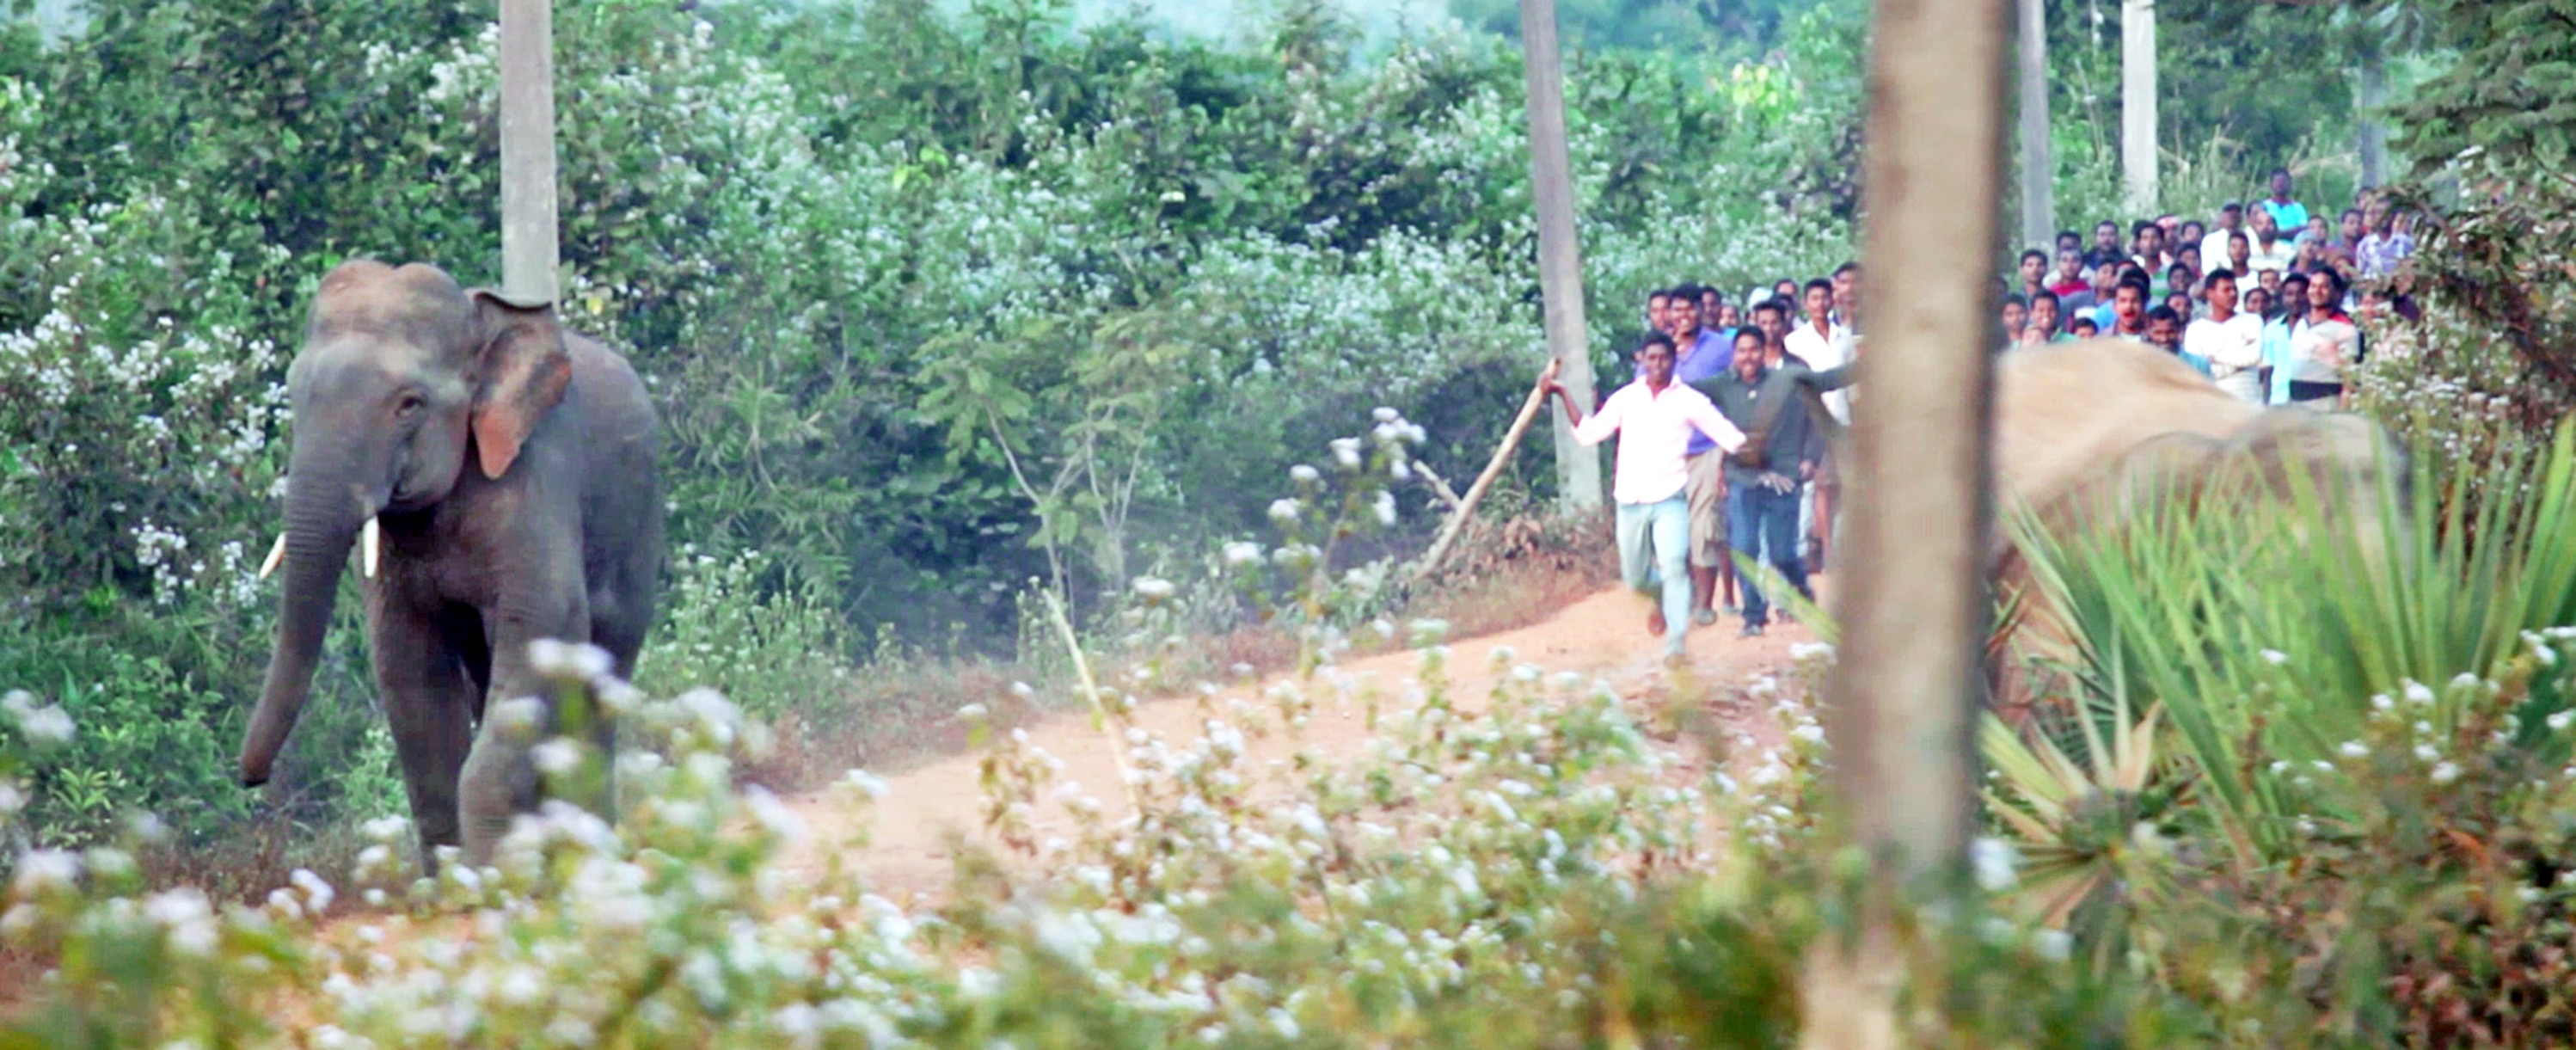 Human mob running after an elephant in Athgarh Forest Division. Photo © Karan Tejpal